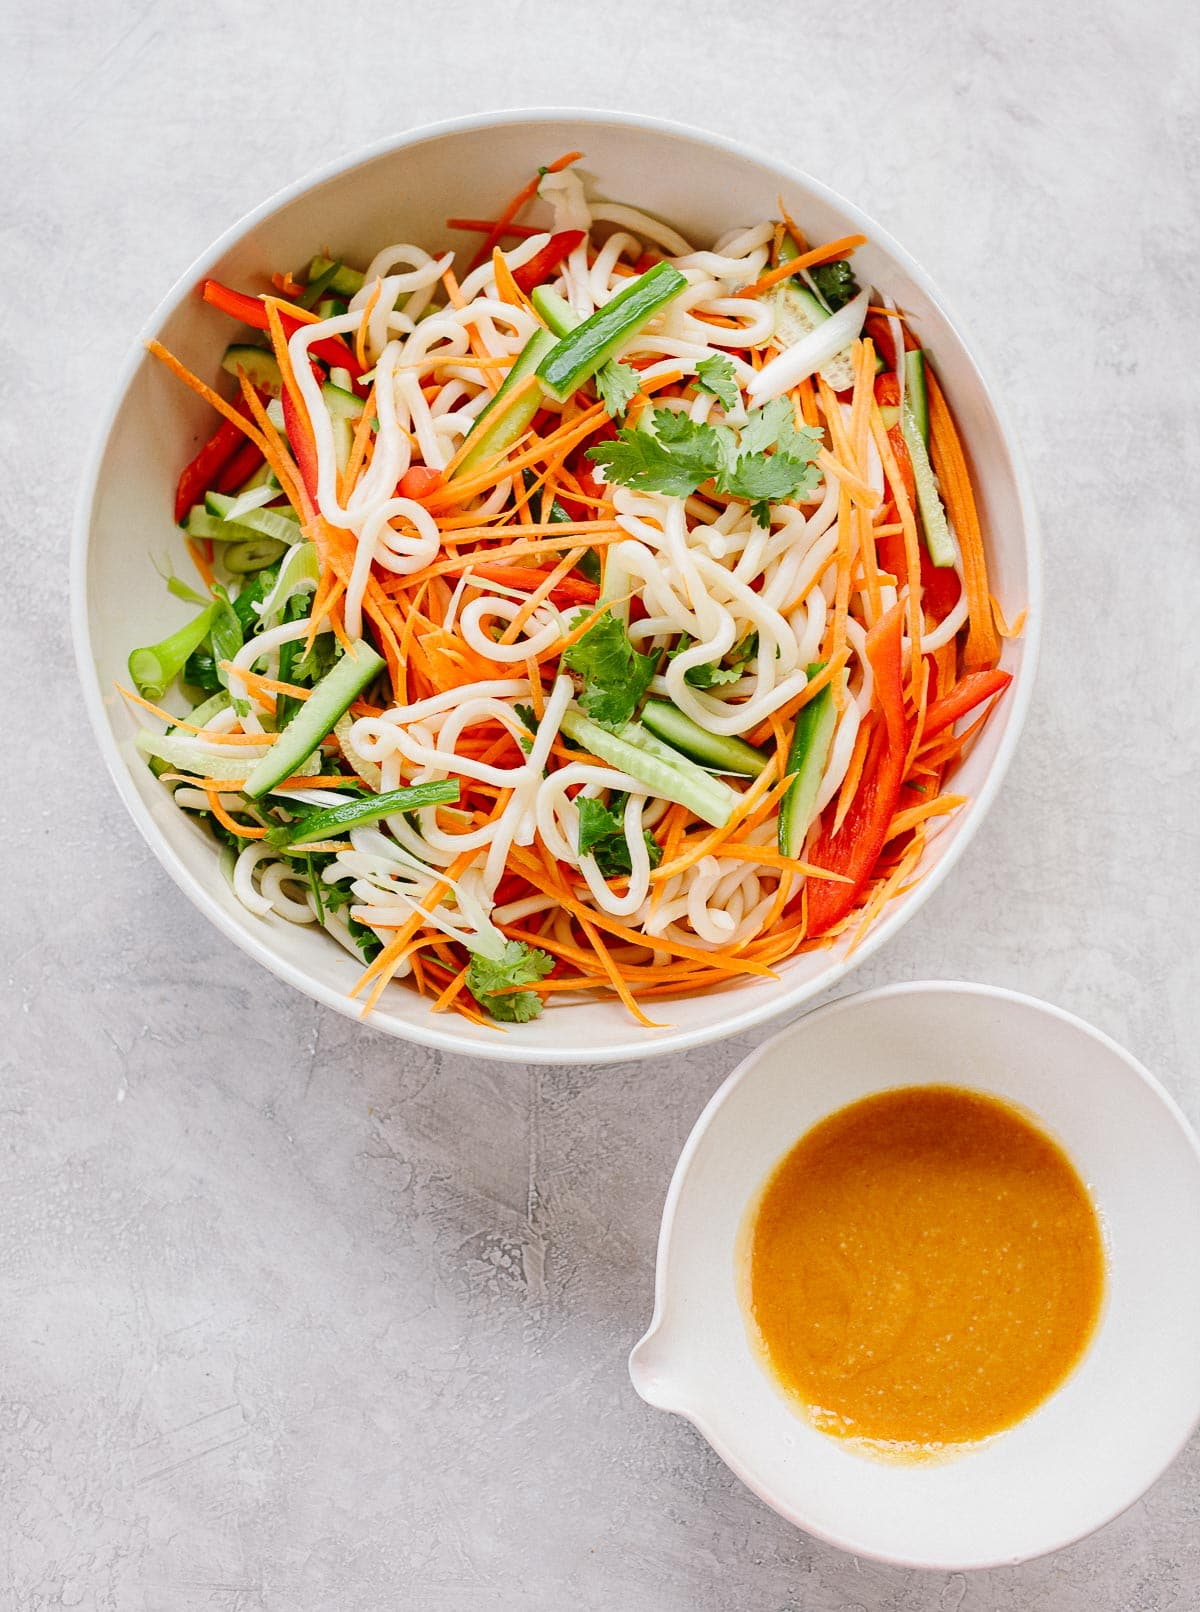 Asian noodle bowl ingredients in a bowl: White udon noodles, fresh cilantro, matchstick-cut carrots, red bell peppers and cucumbers.